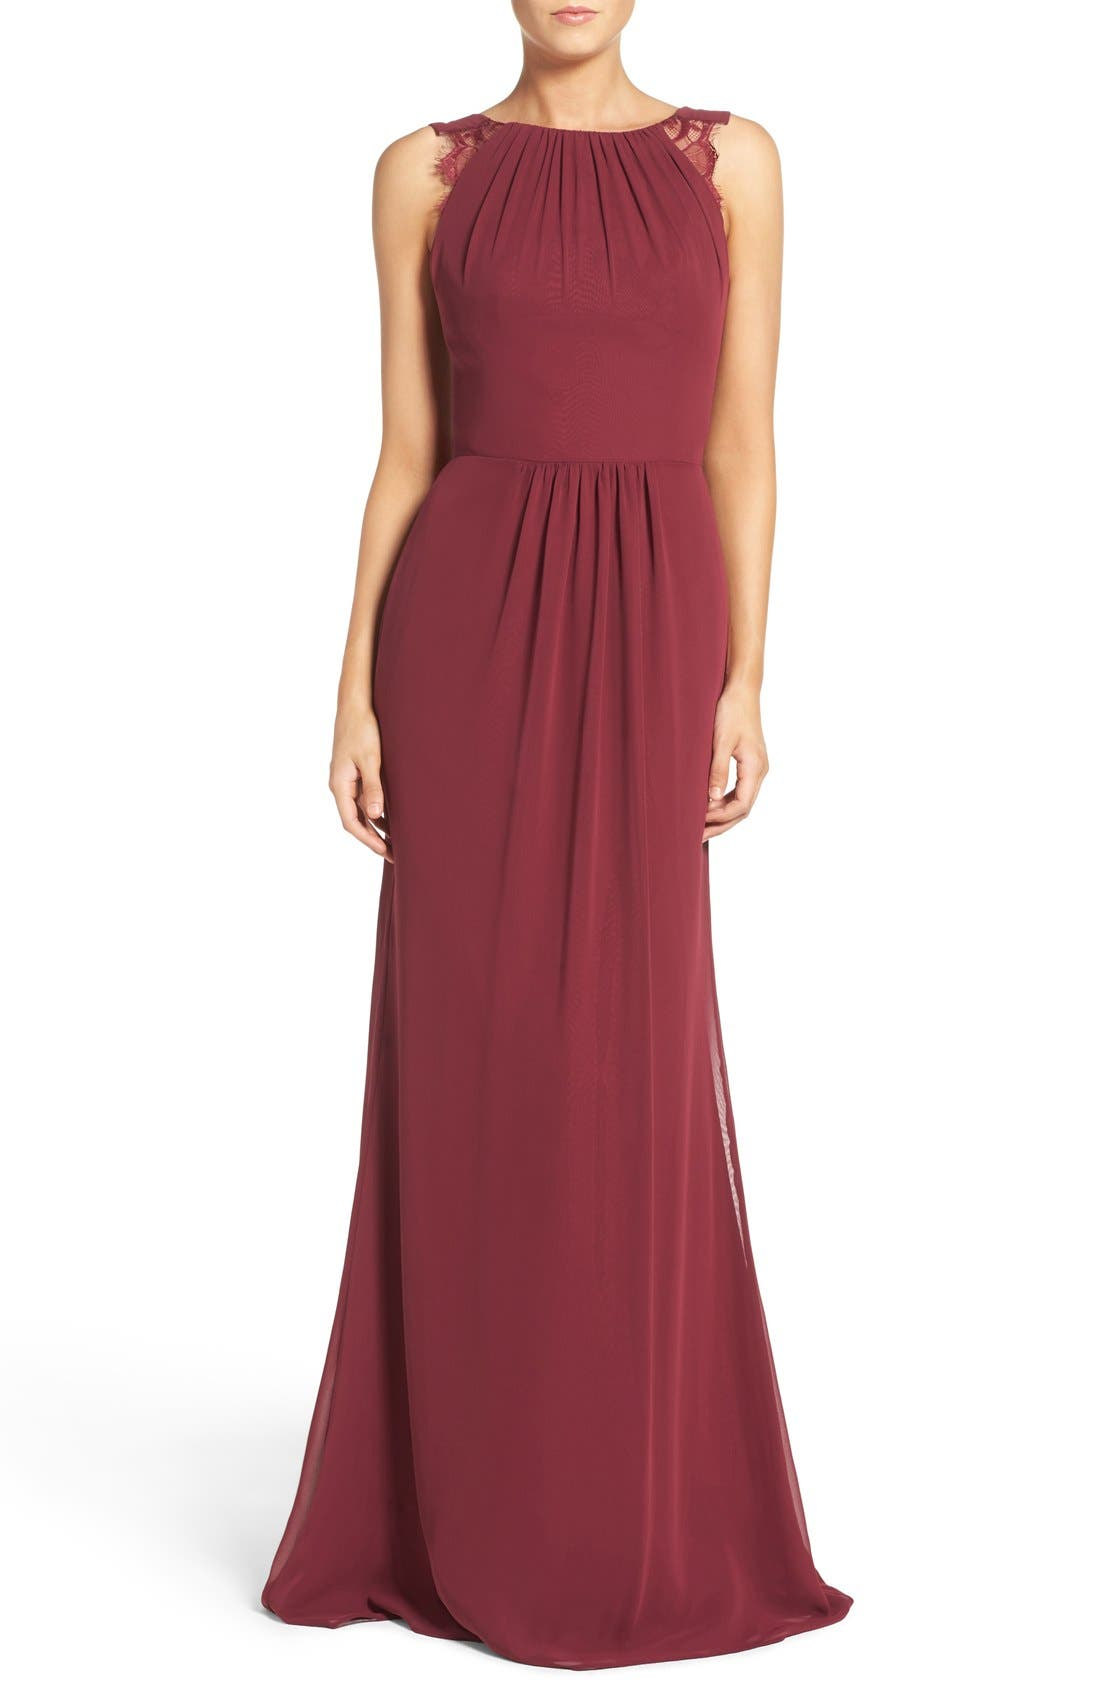 Lace Strap Gathered Chiffon Gown,                         Main,                         color, Burgundy/ Burgundy